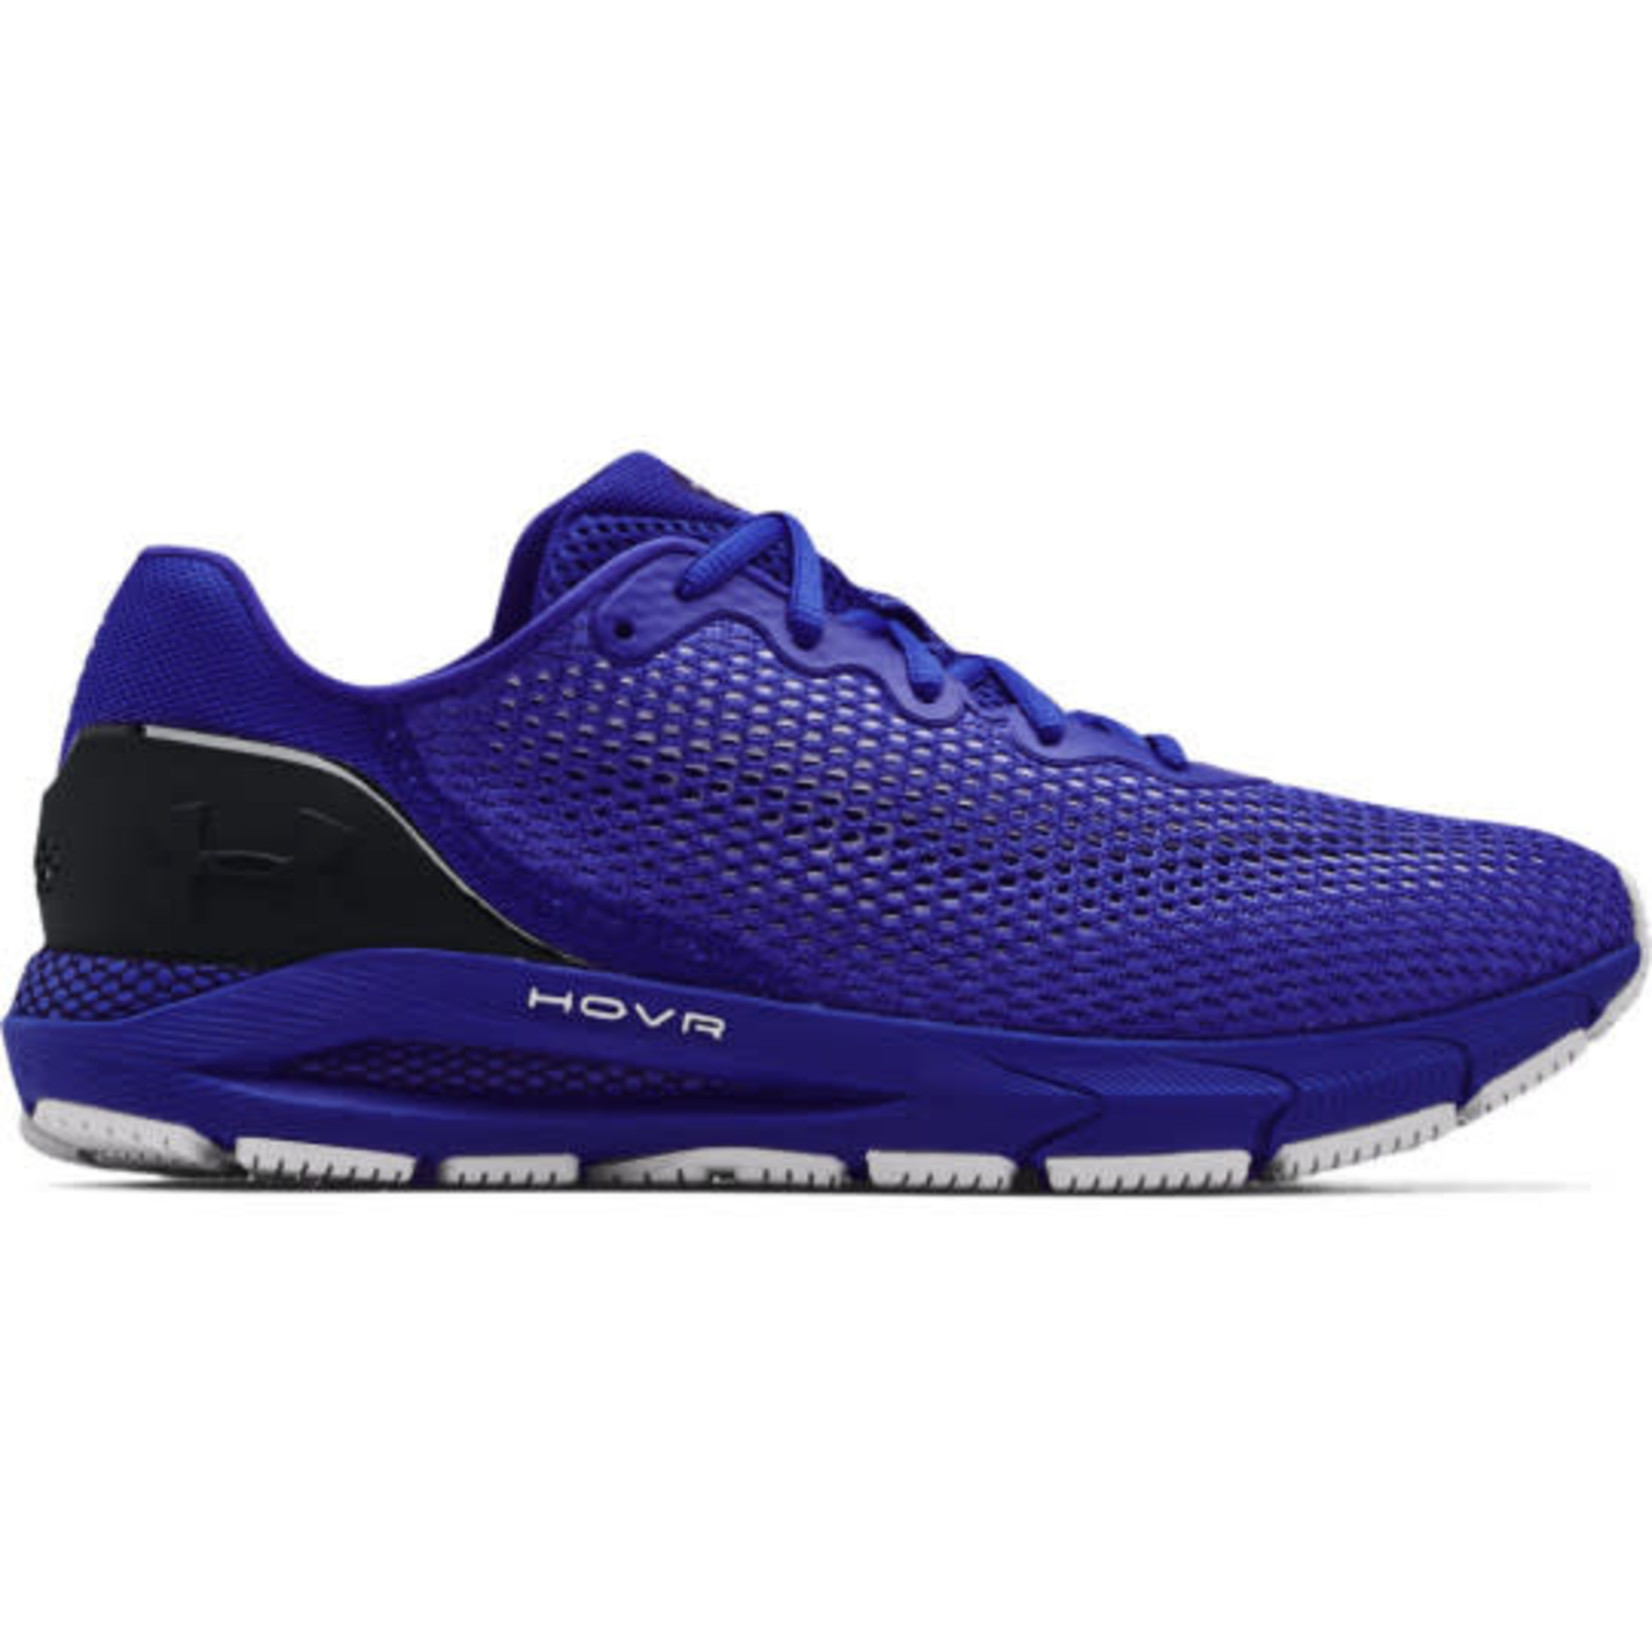 Under Armour Under Armour Running Shoes, HOVR Sonic 4, Mens